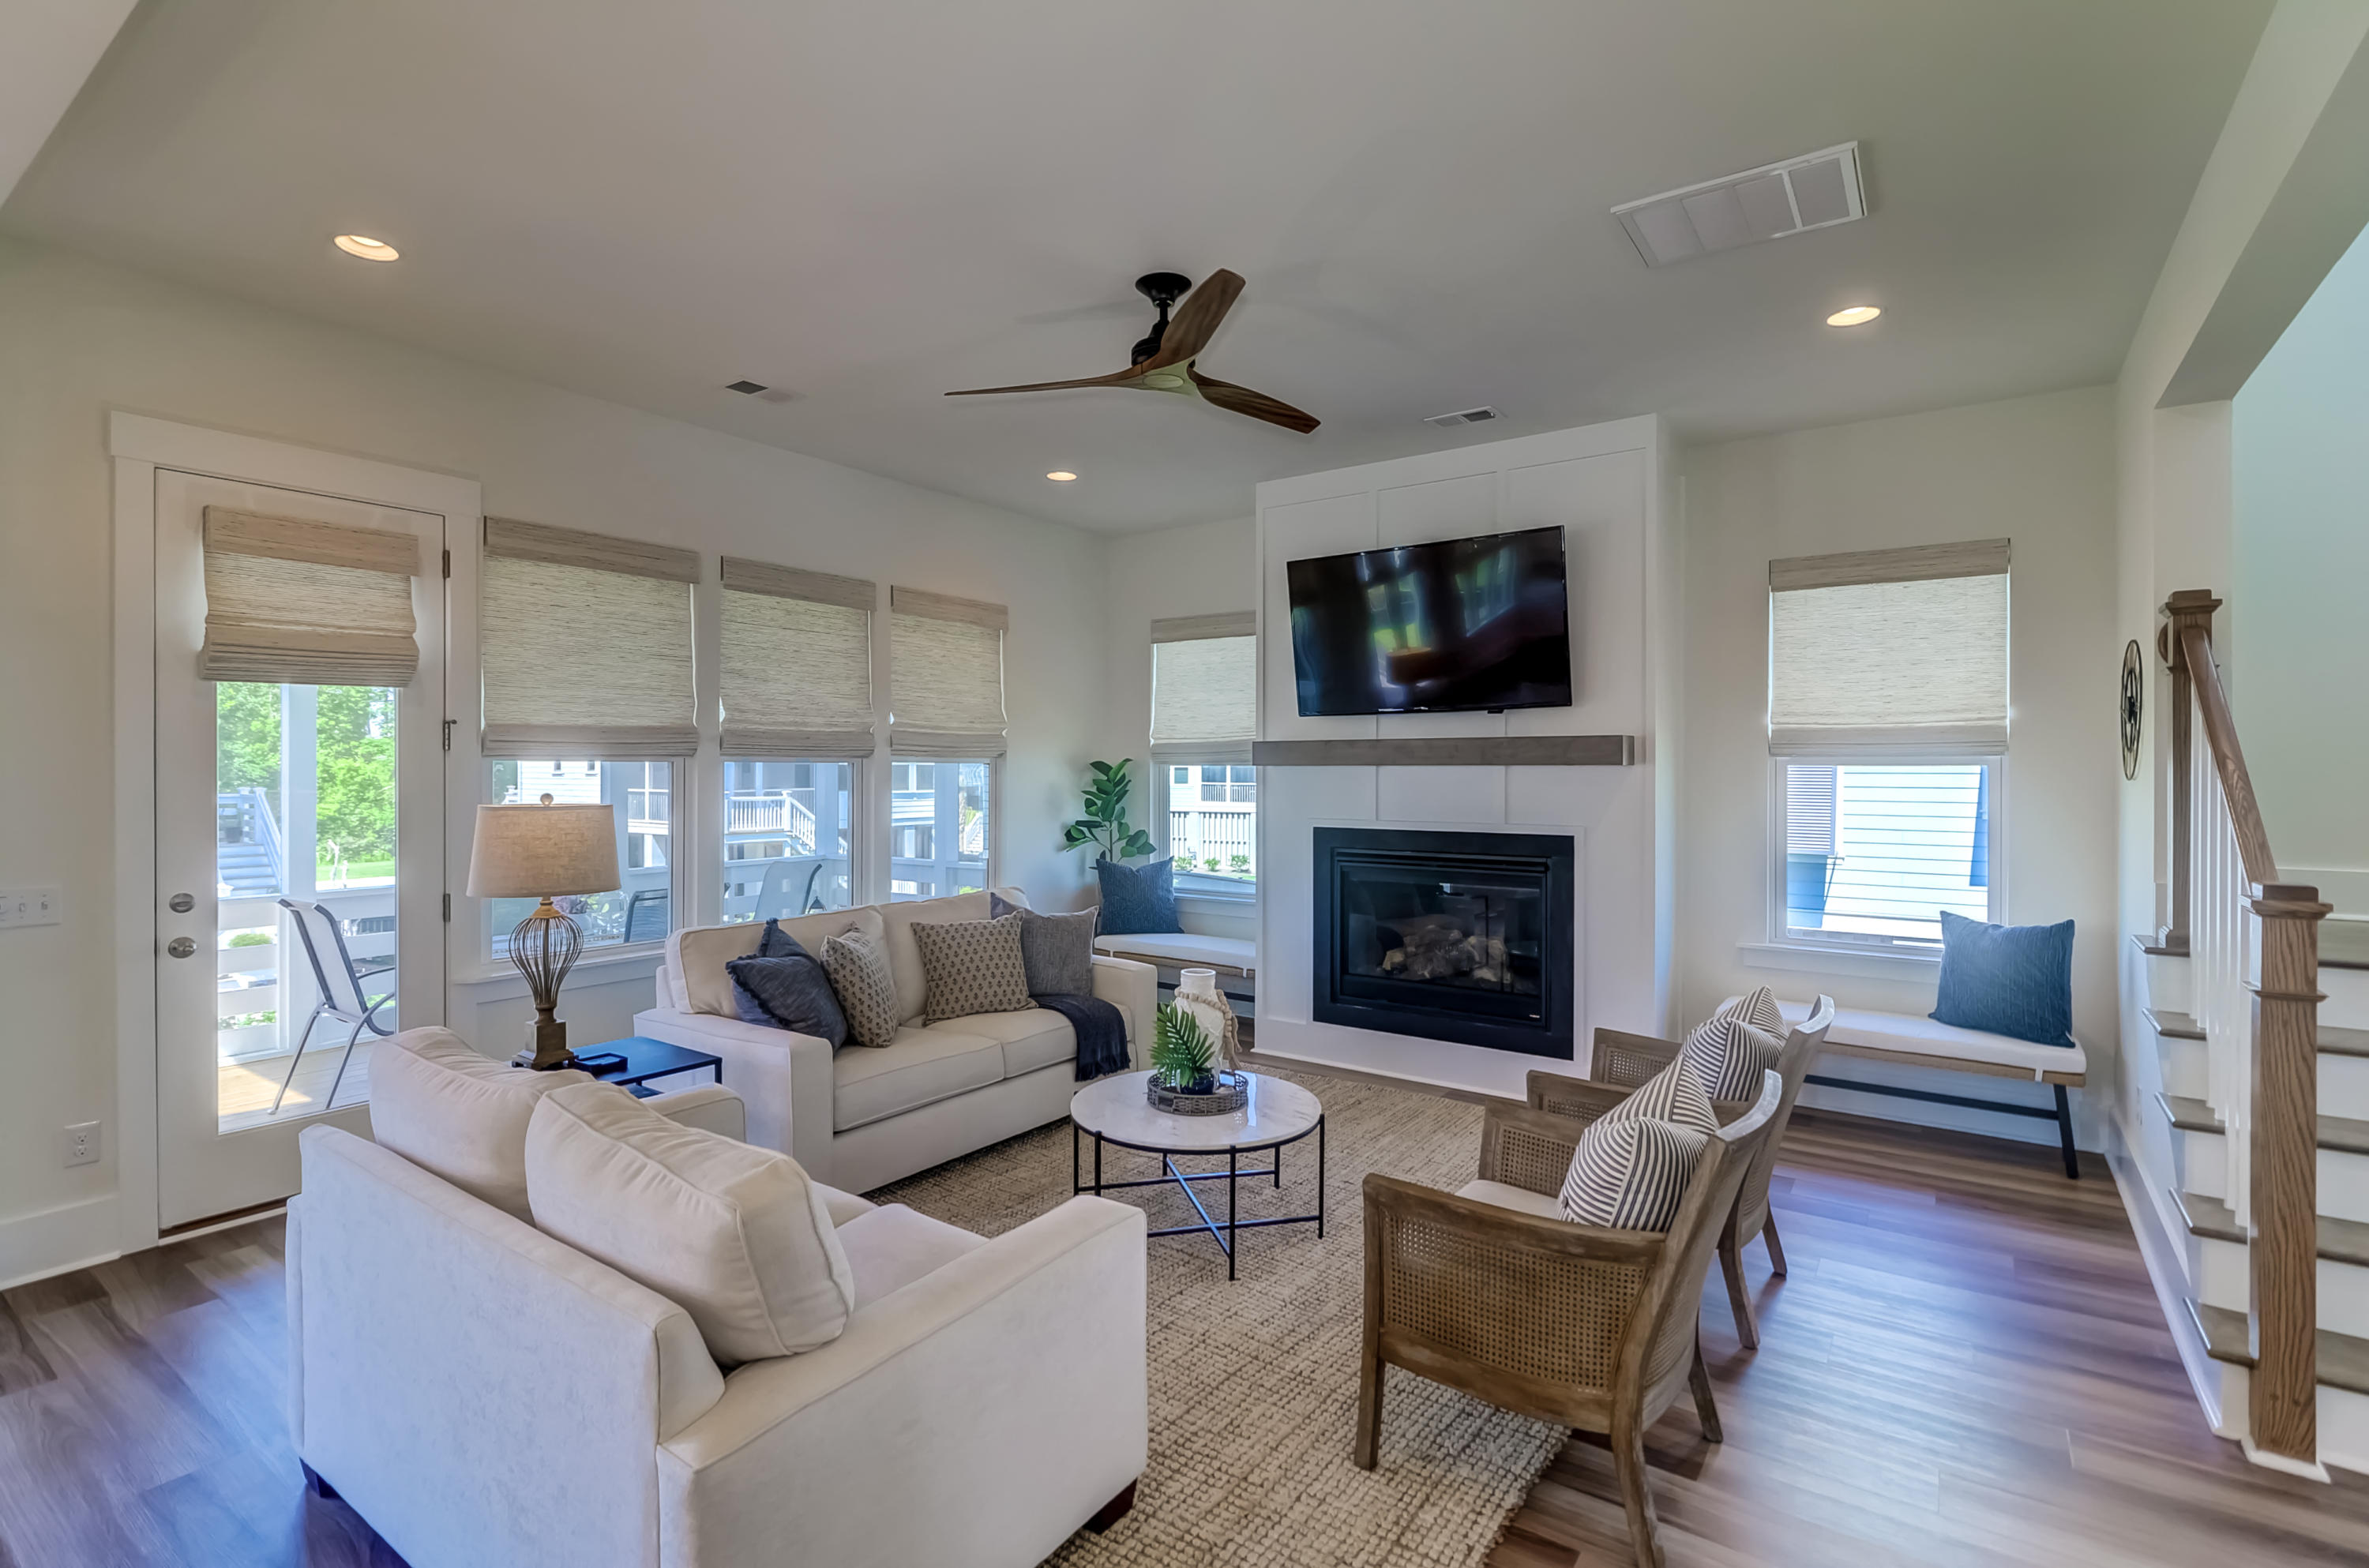 Stratton by the Sound Homes For Sale - 3609 Tidal Flat, Mount Pleasant, SC - 12